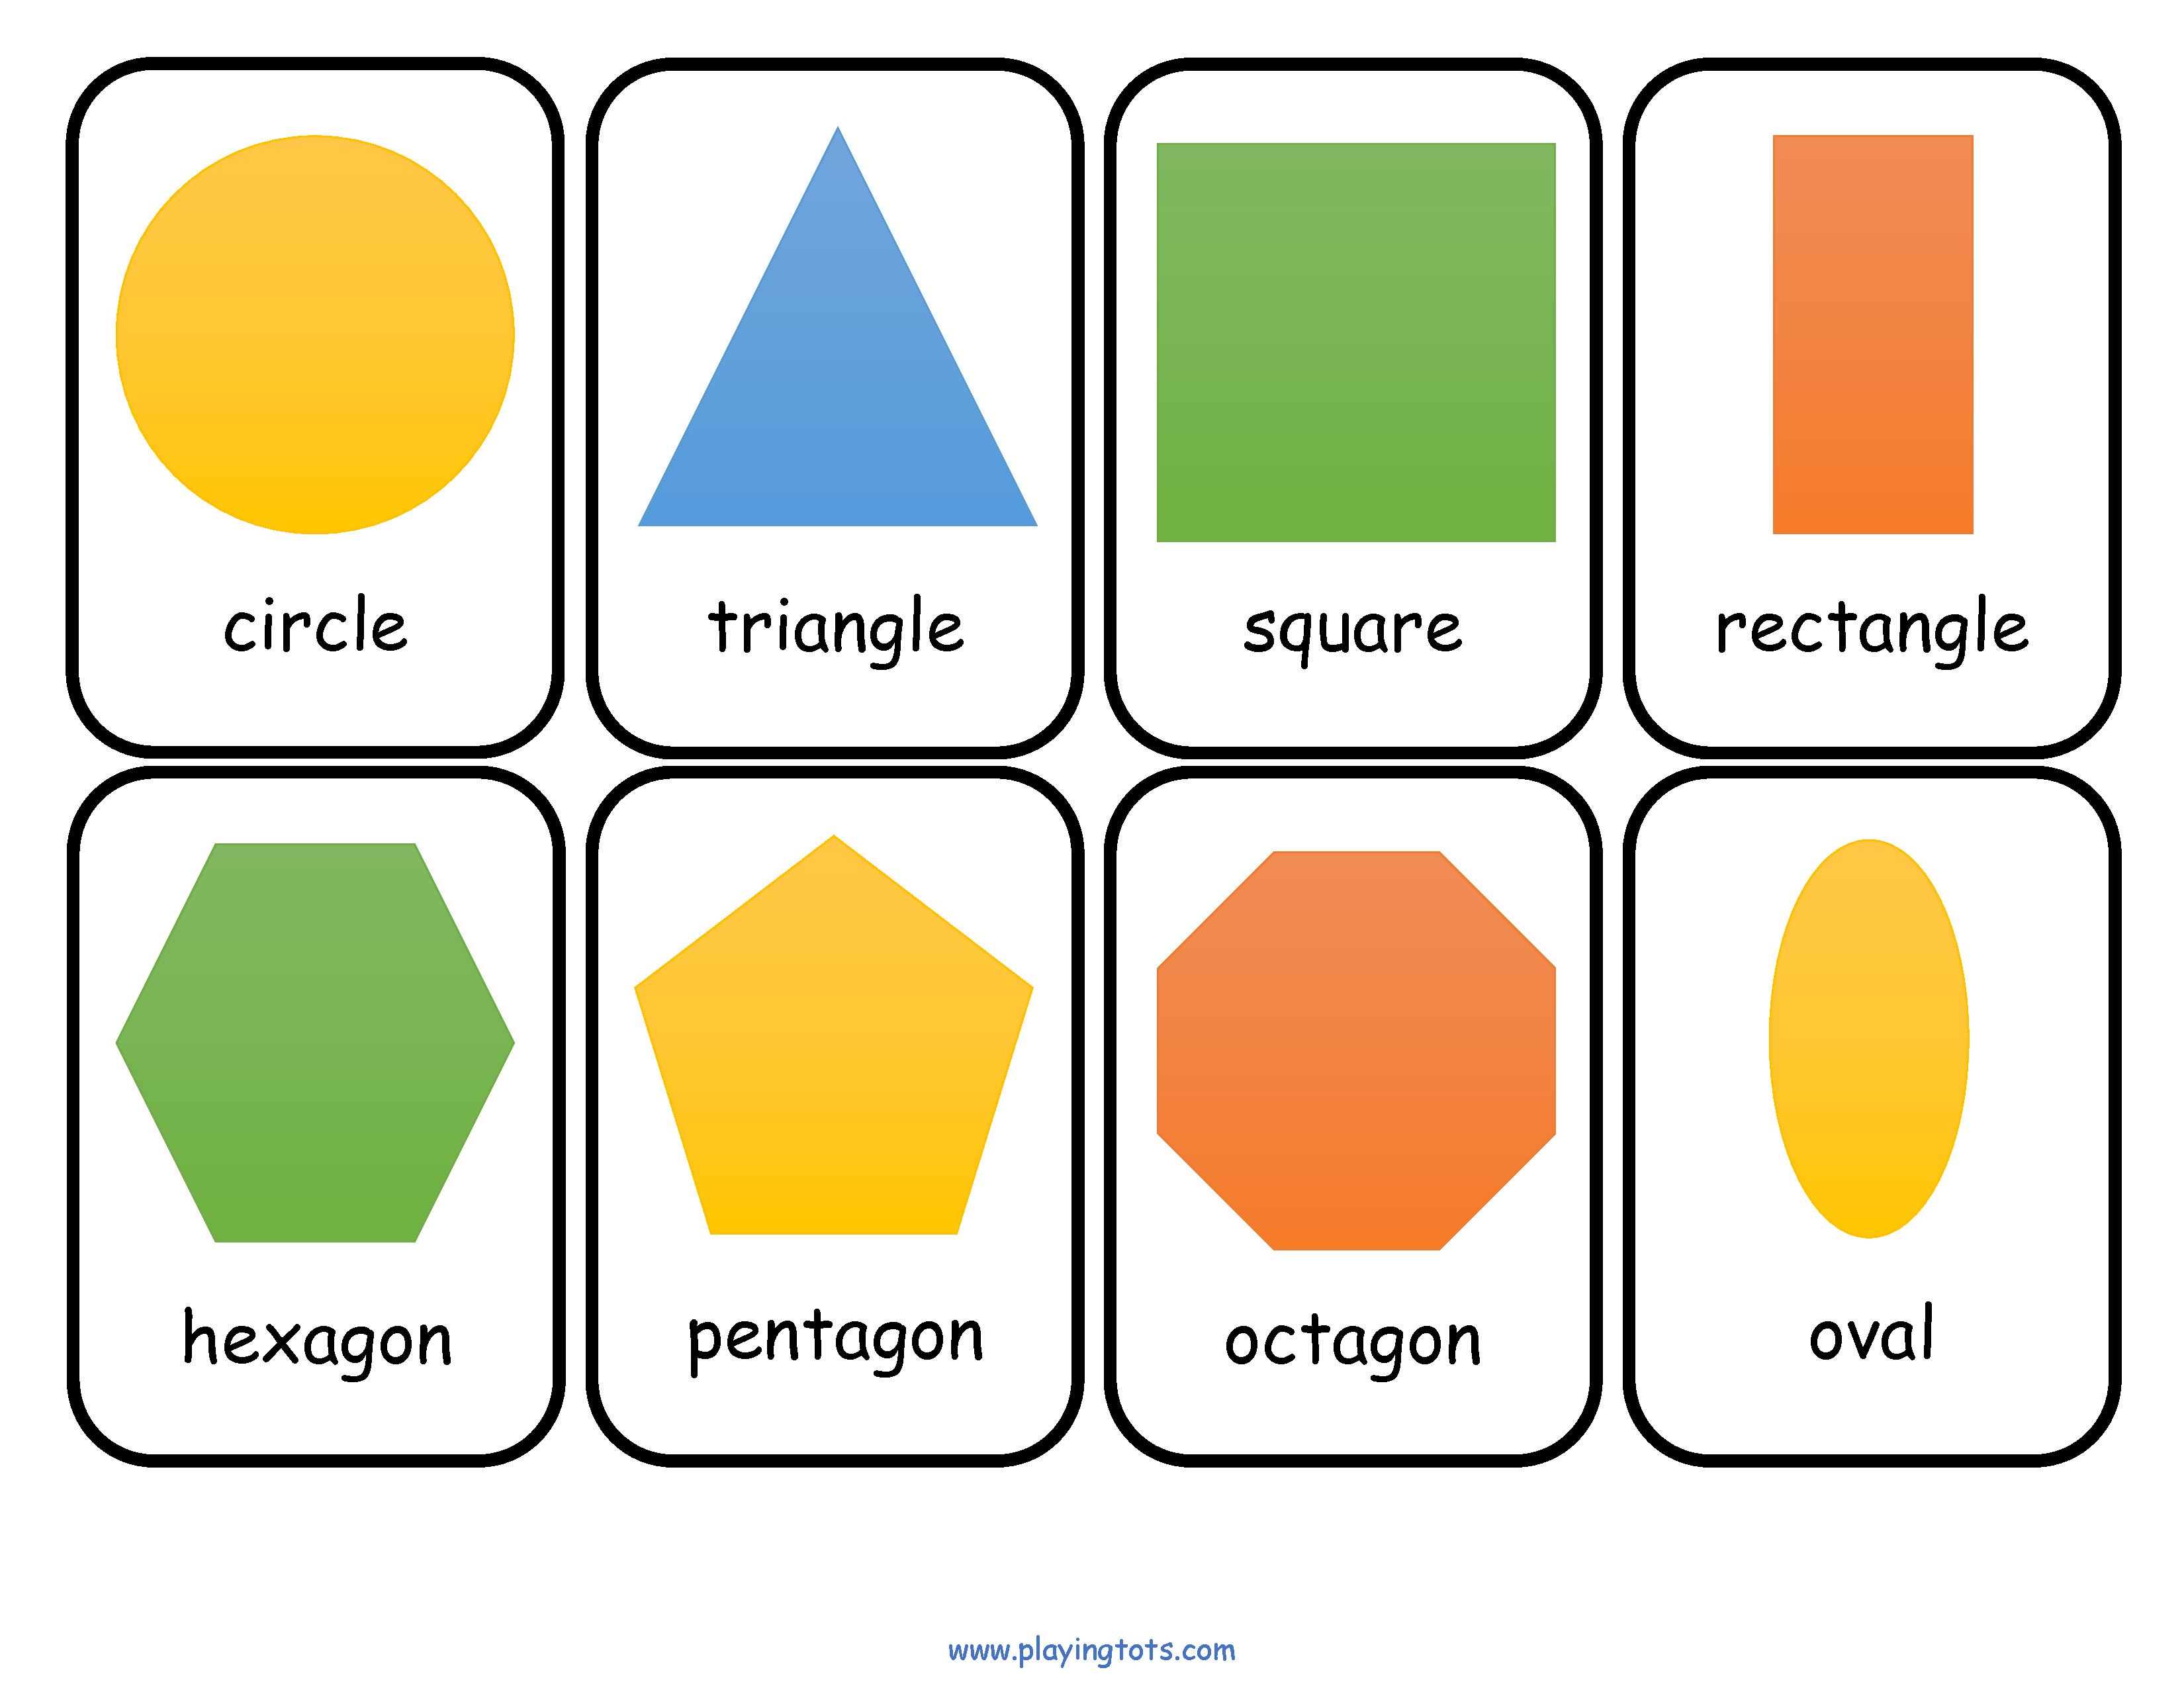 Free Printable Shapes Flash Cards Flashcards For Kids Printable Flash Cards Shapes Preschool [ 2550 x 3300 Pixel ]